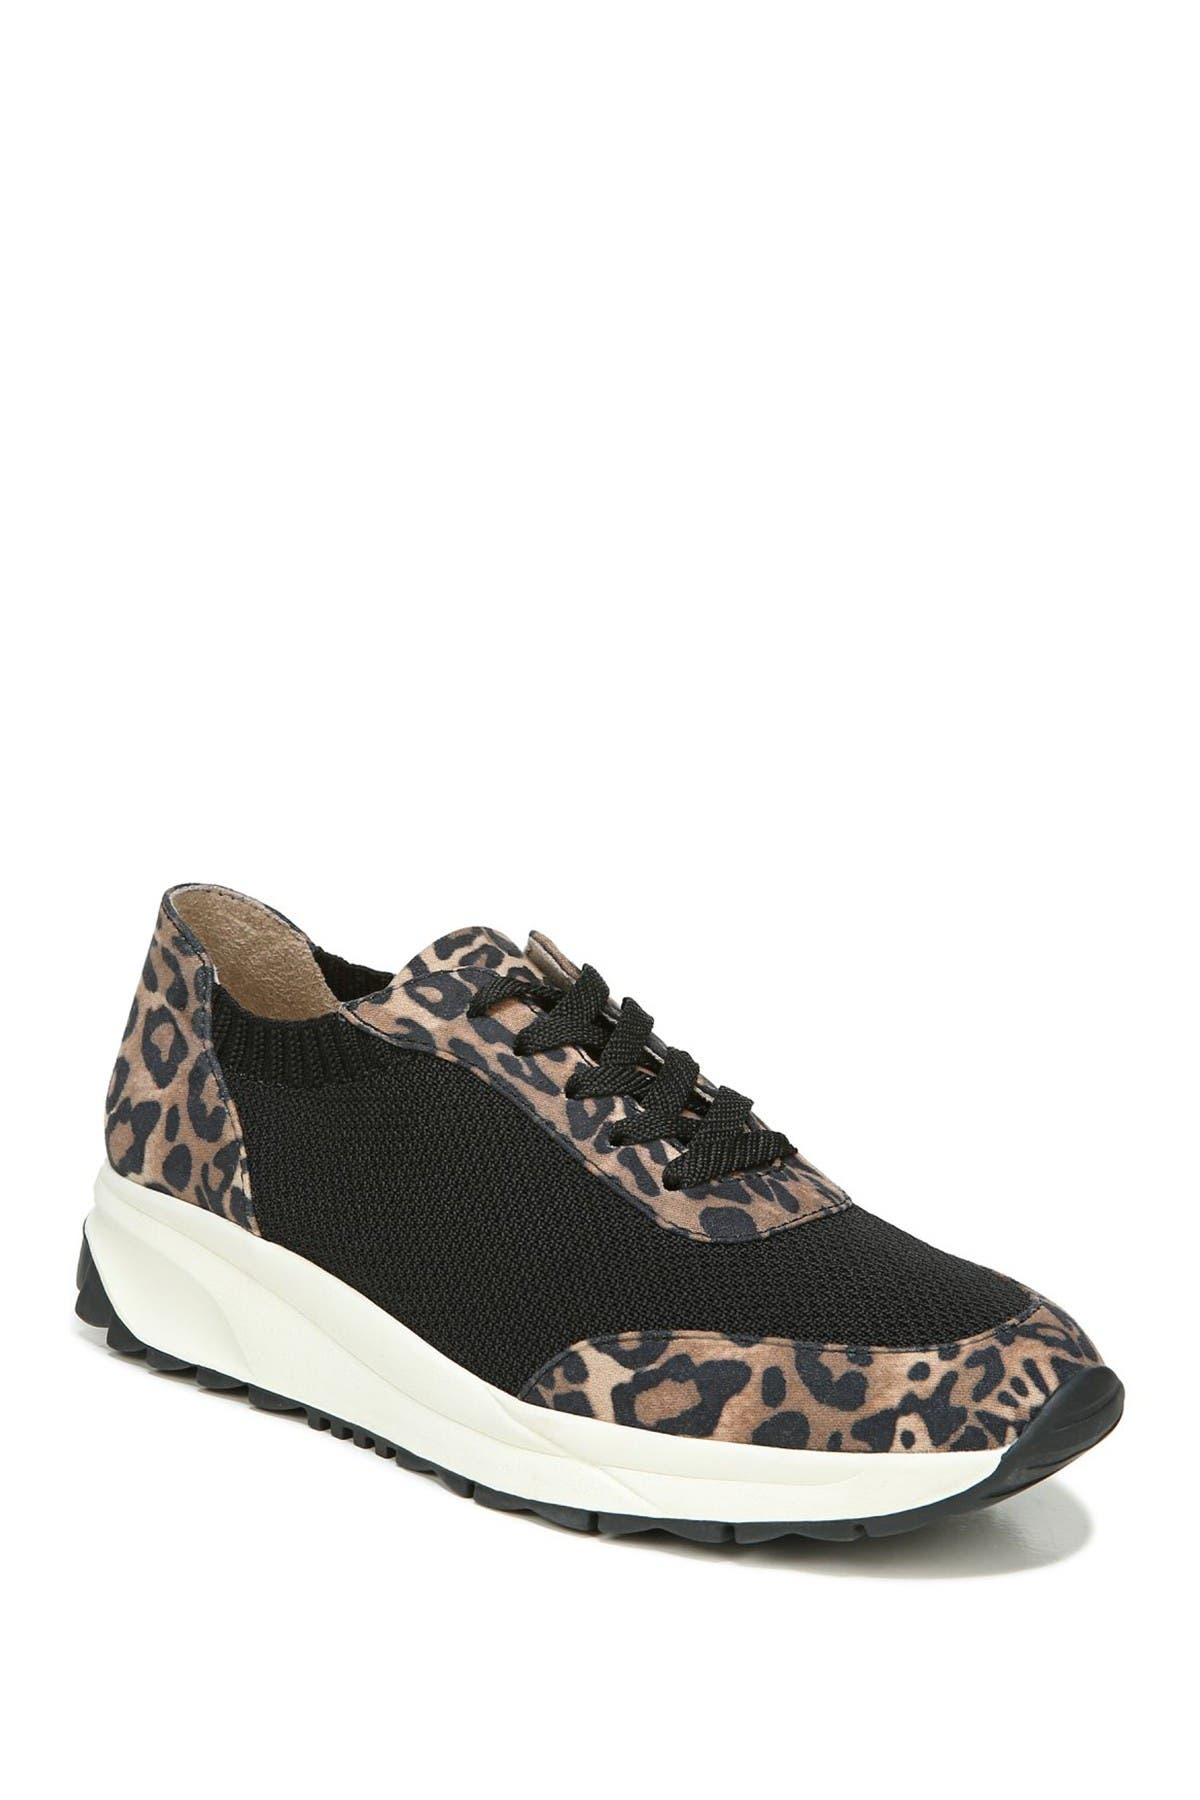 Image of Naturalizer Nash Sneaker